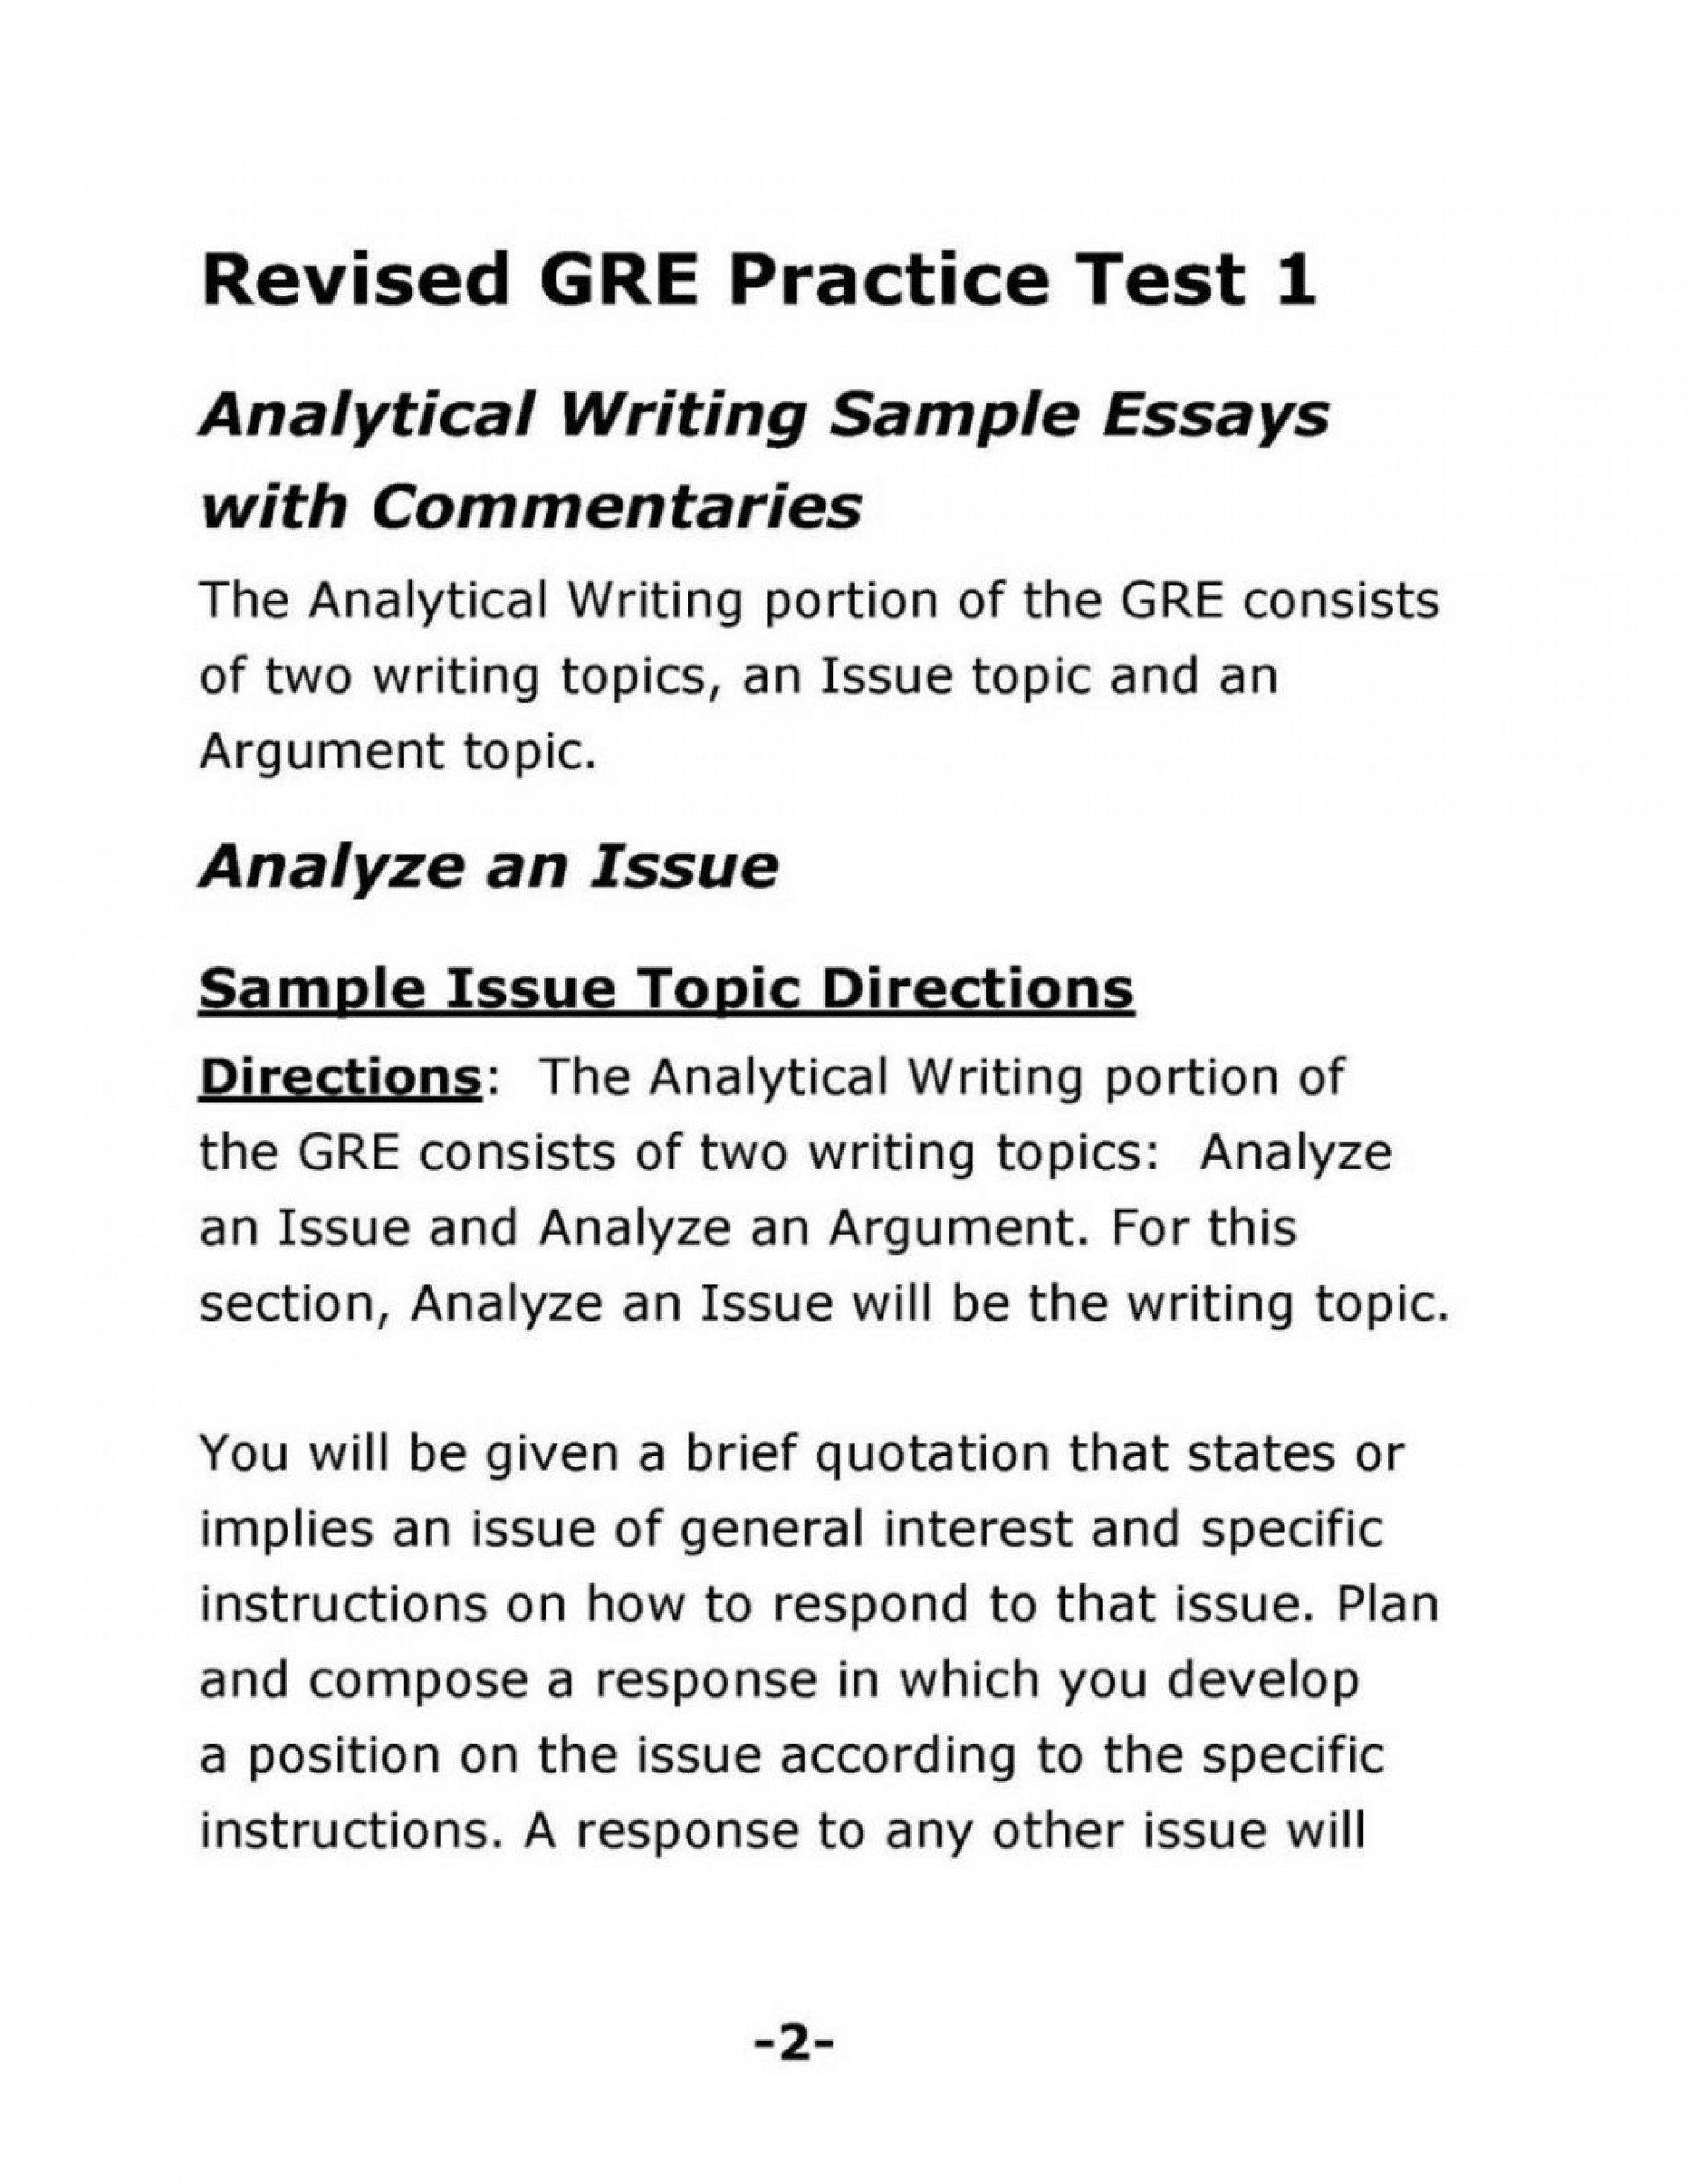 005 Gre Essay Topics Argumentative Analysis Thesis For Literary Questions List Sample Test Papers With Soluti Real Pool Issue Common Answers To Pdf Argument And 1048x1356 Rare Magoosh 1920